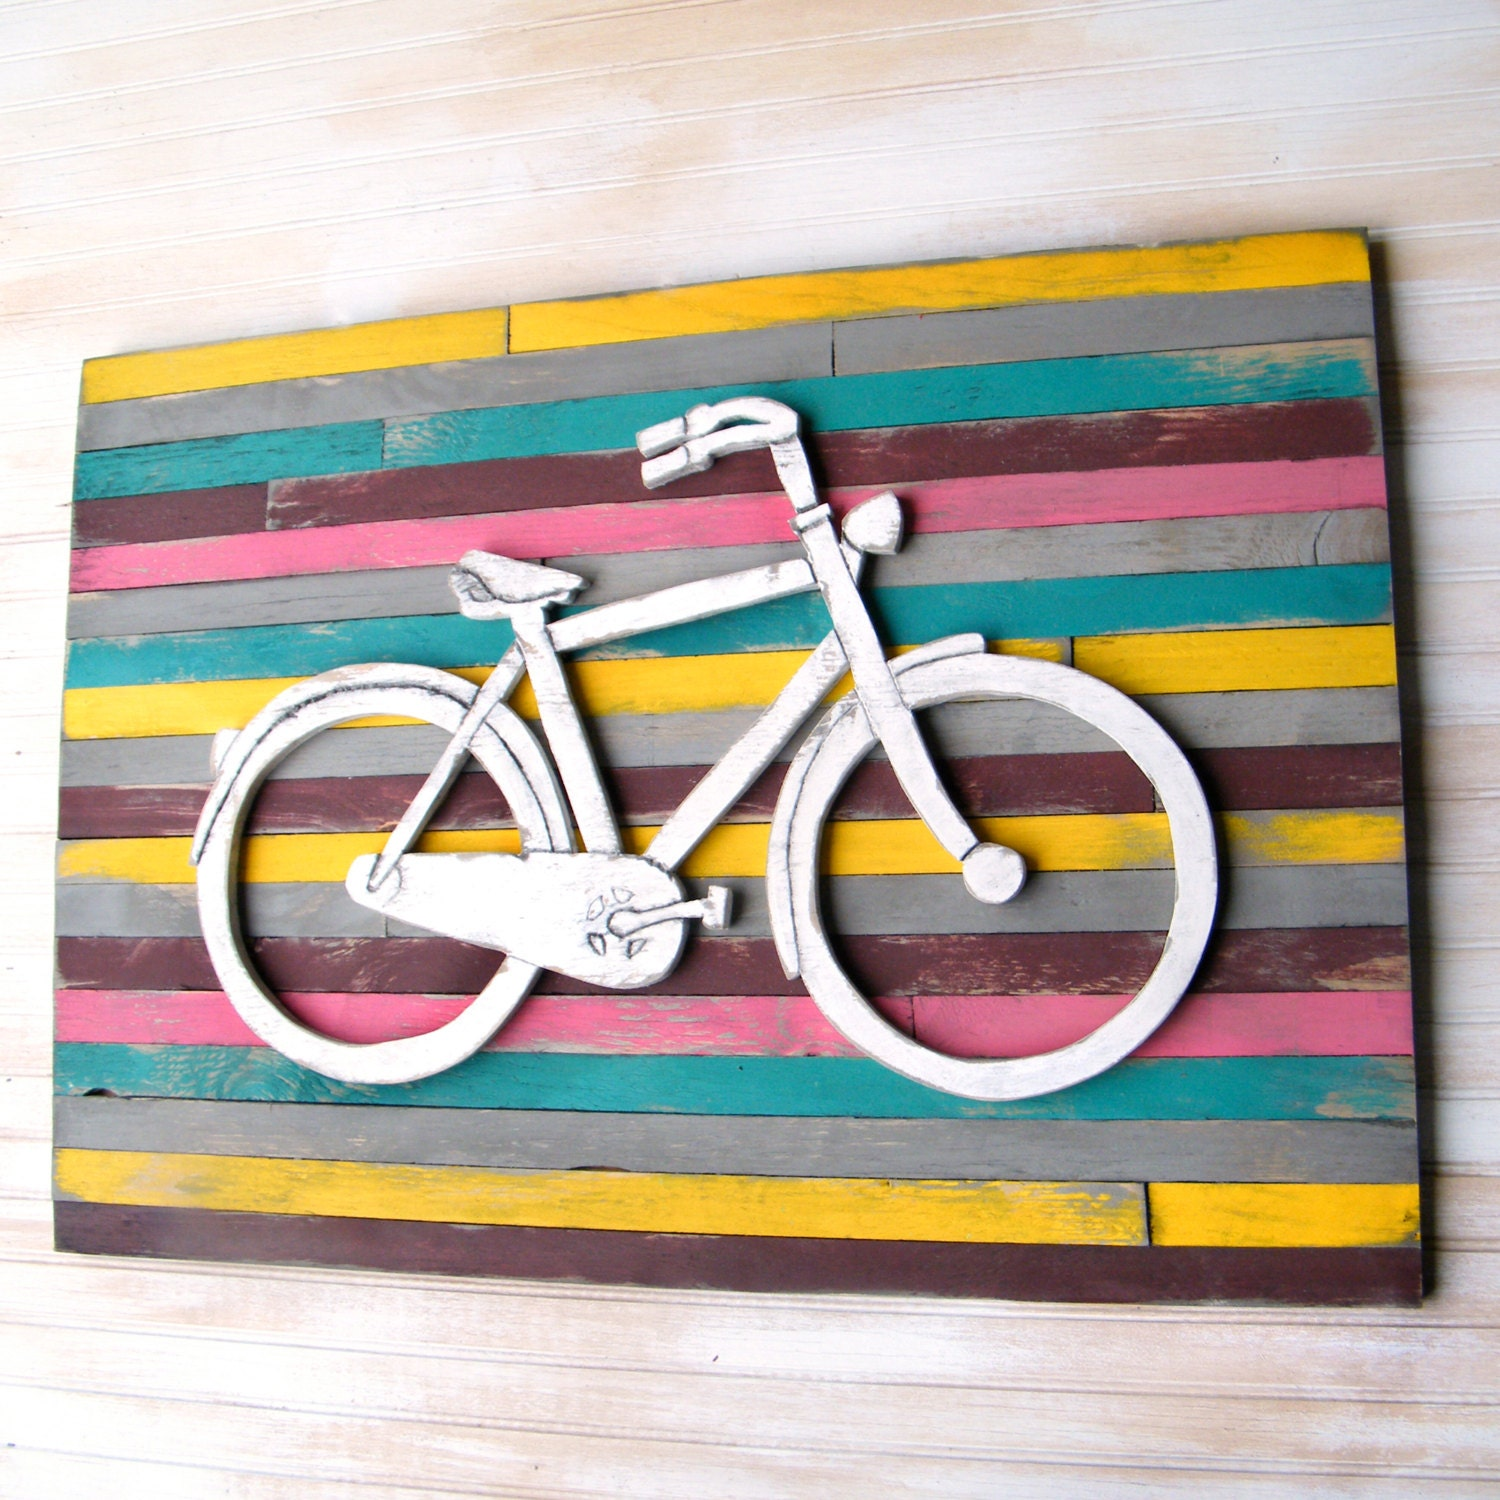 Bike Wall Art bicycle art pallet background large bicycle wall decor wooden